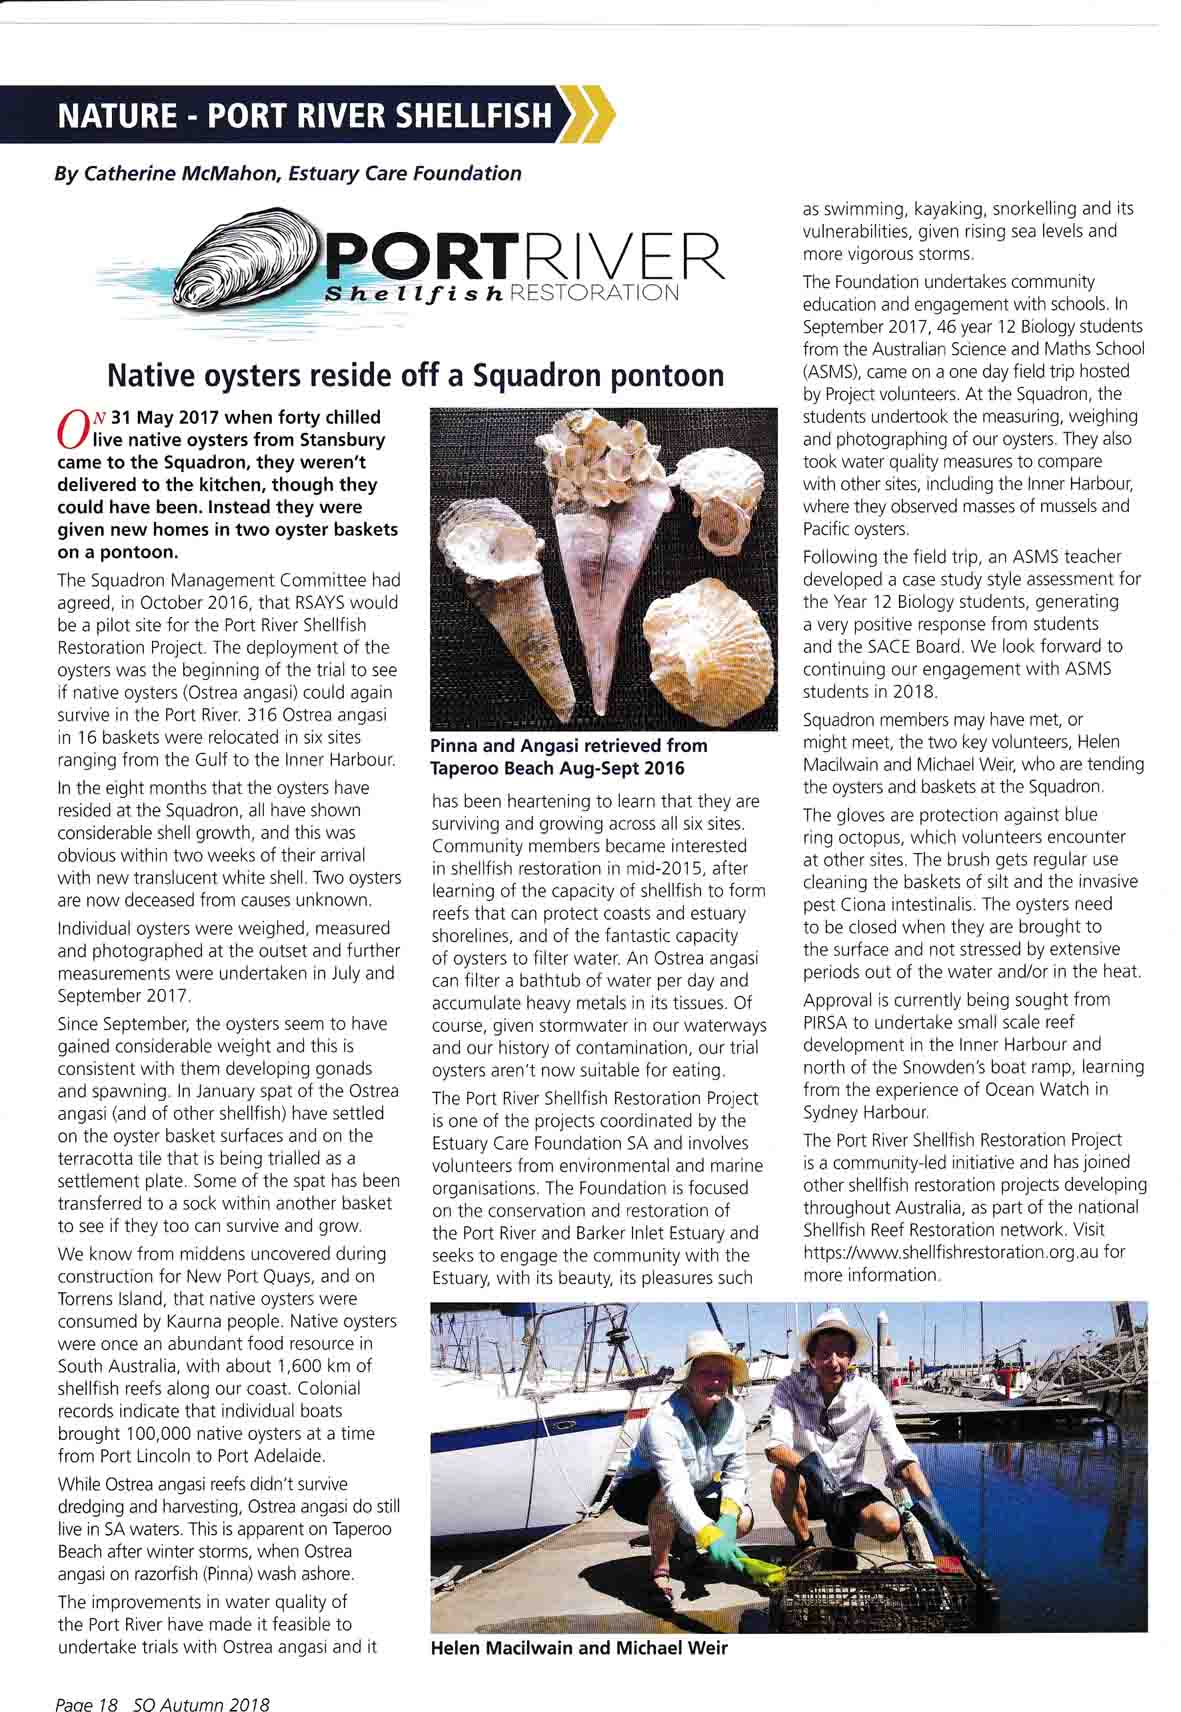 The article on page 18